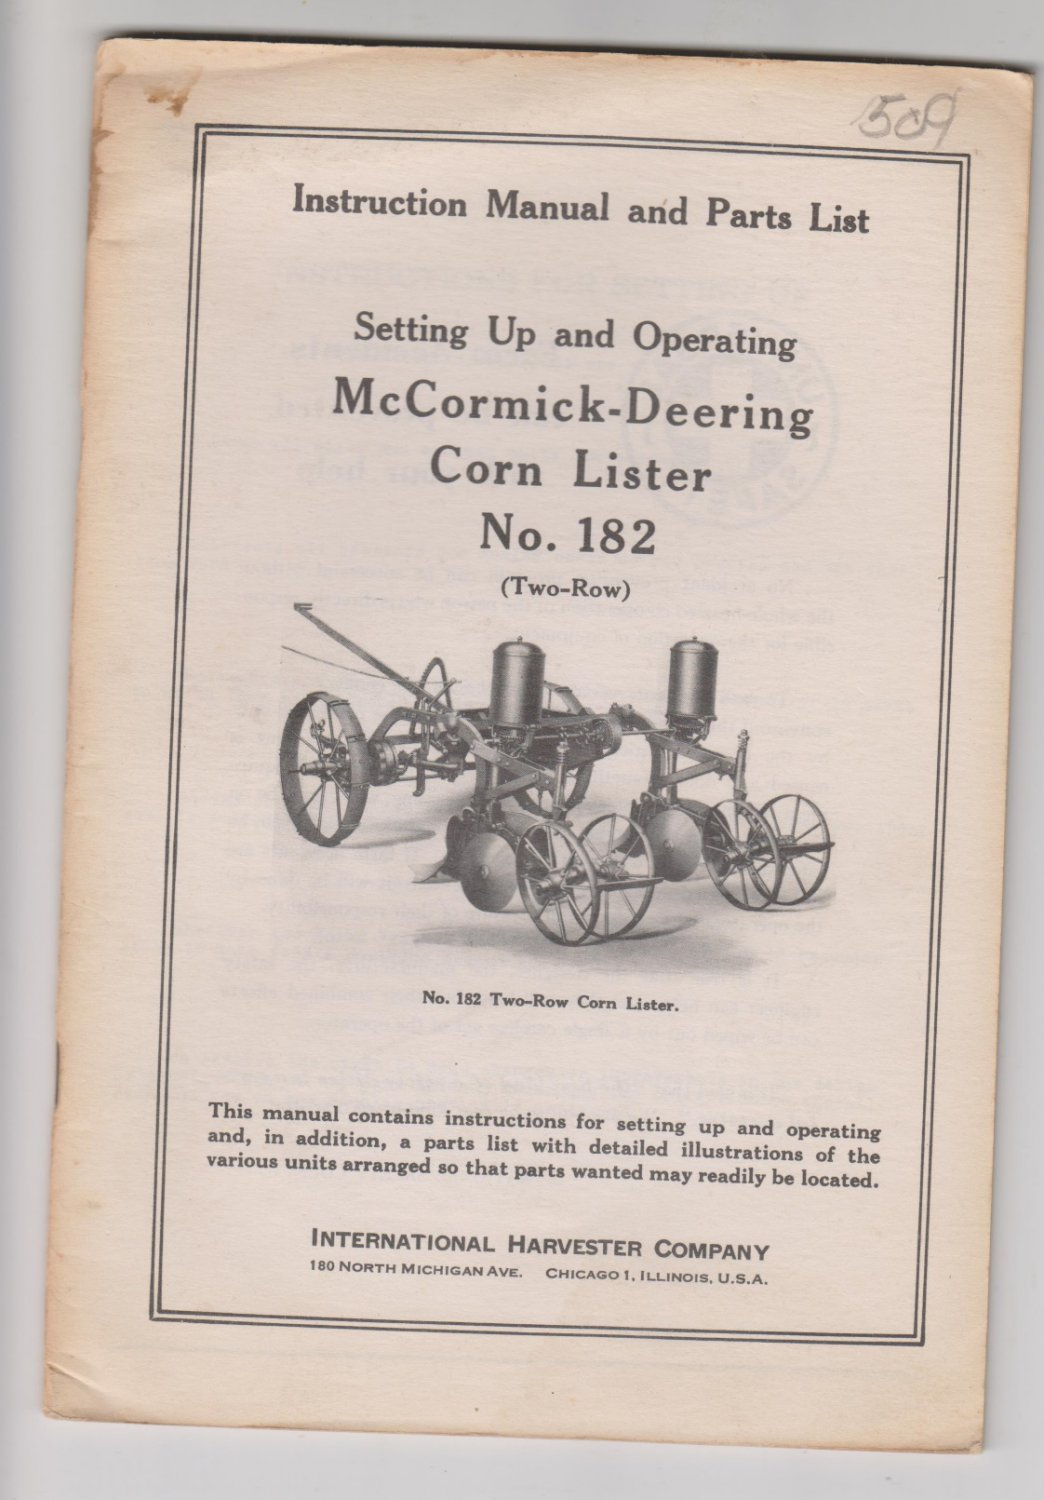 Instruction Manual IH Mccormick Deering Corn Lister no 182 Two Row